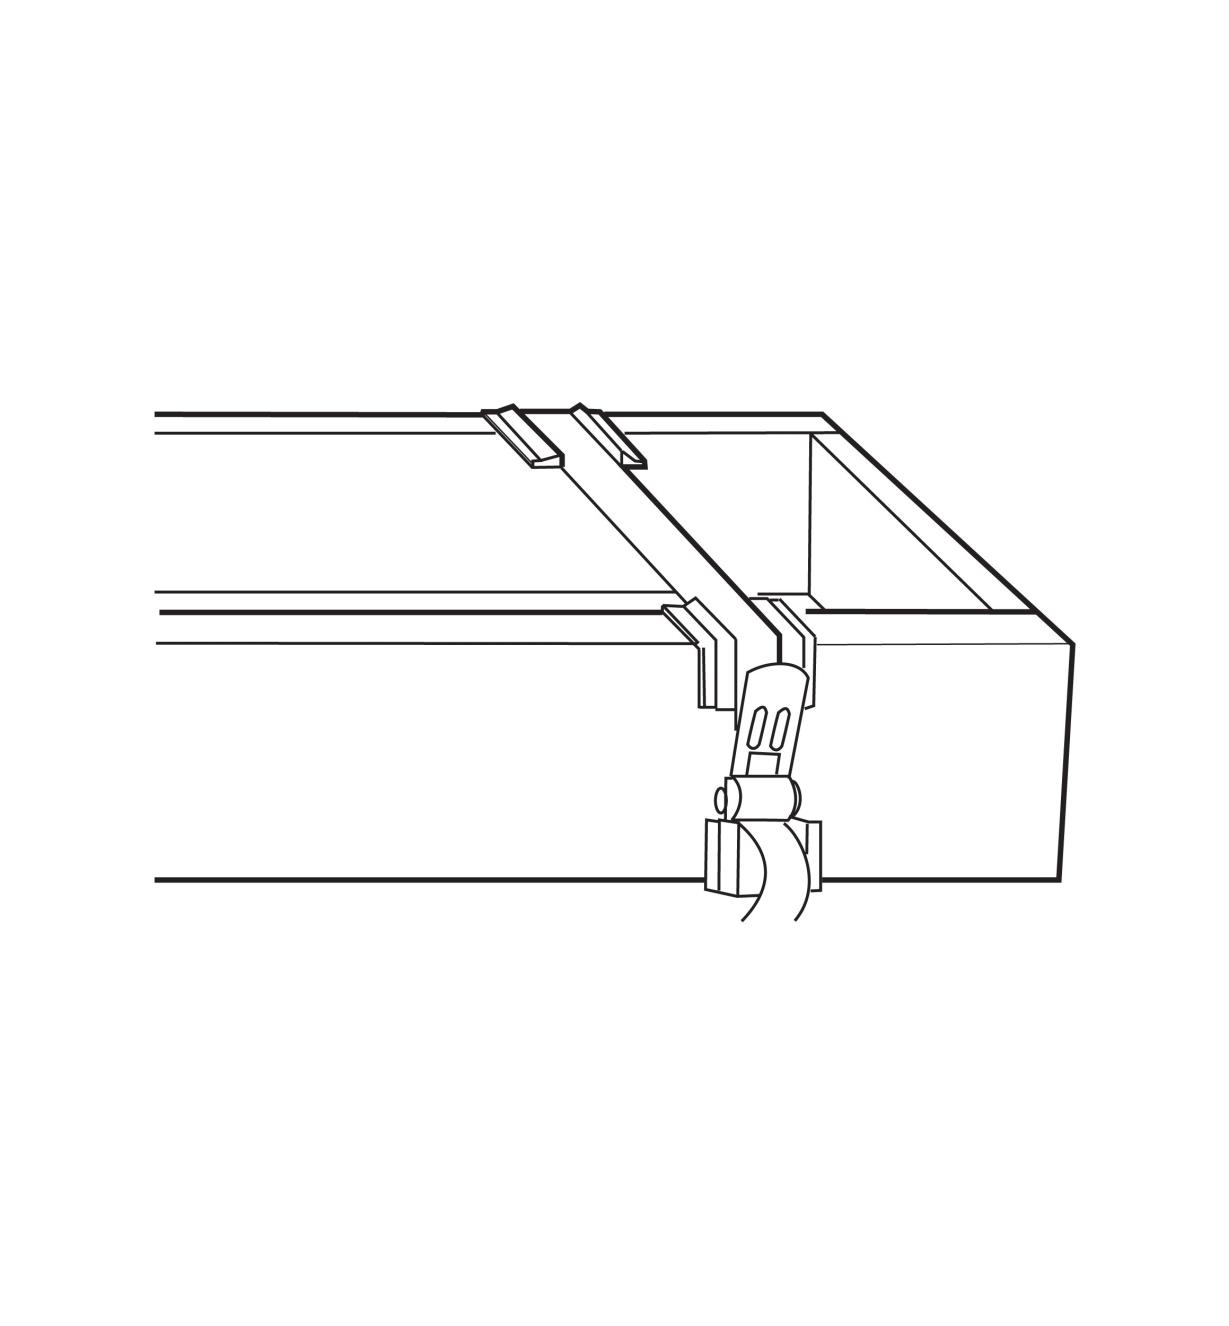 Illustration of web clamp used to clamp a drawer